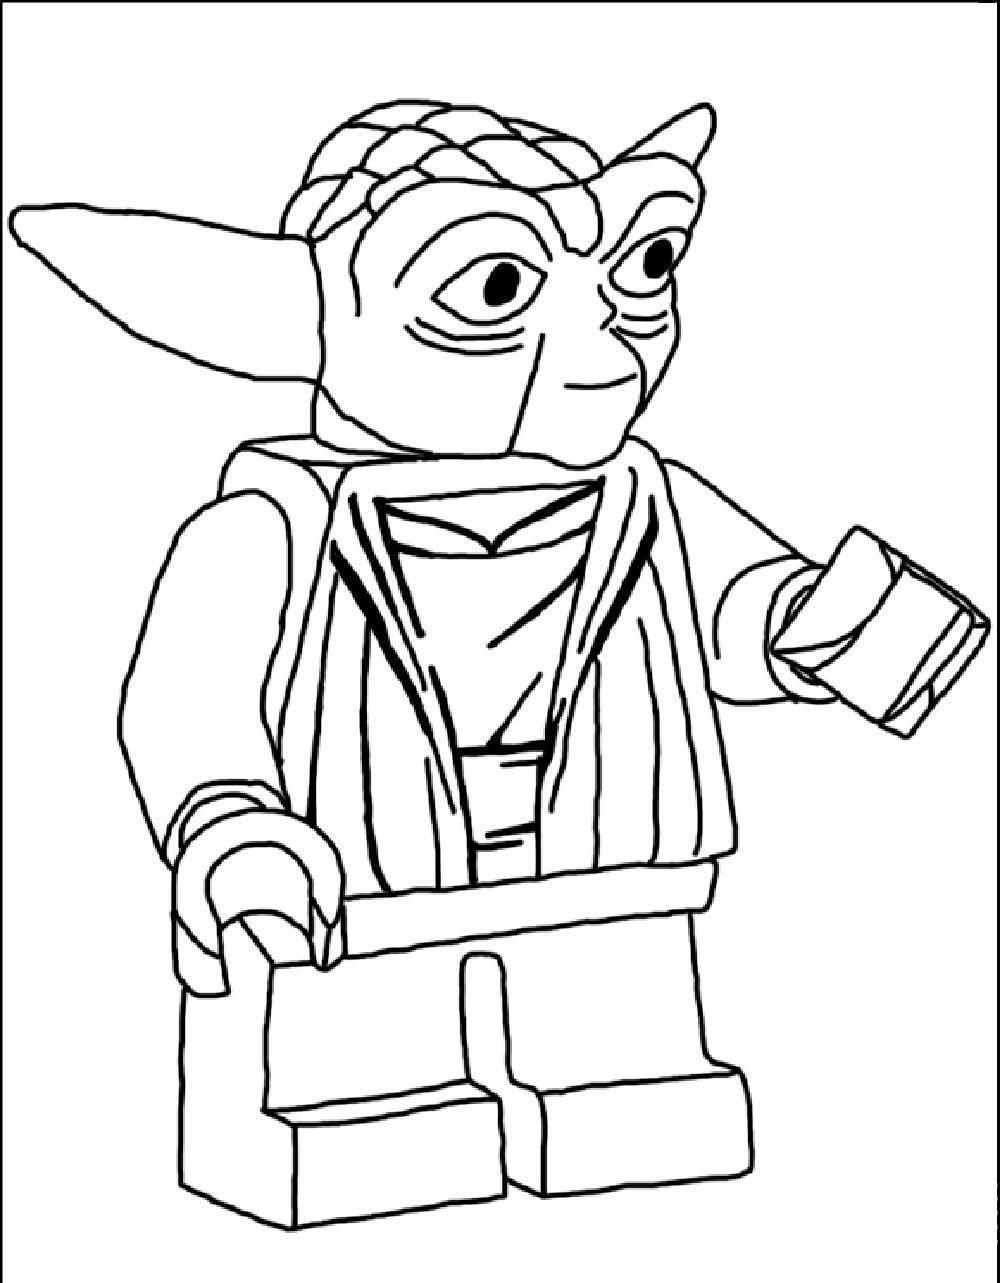 Printable Yoda Head Coloring Pages